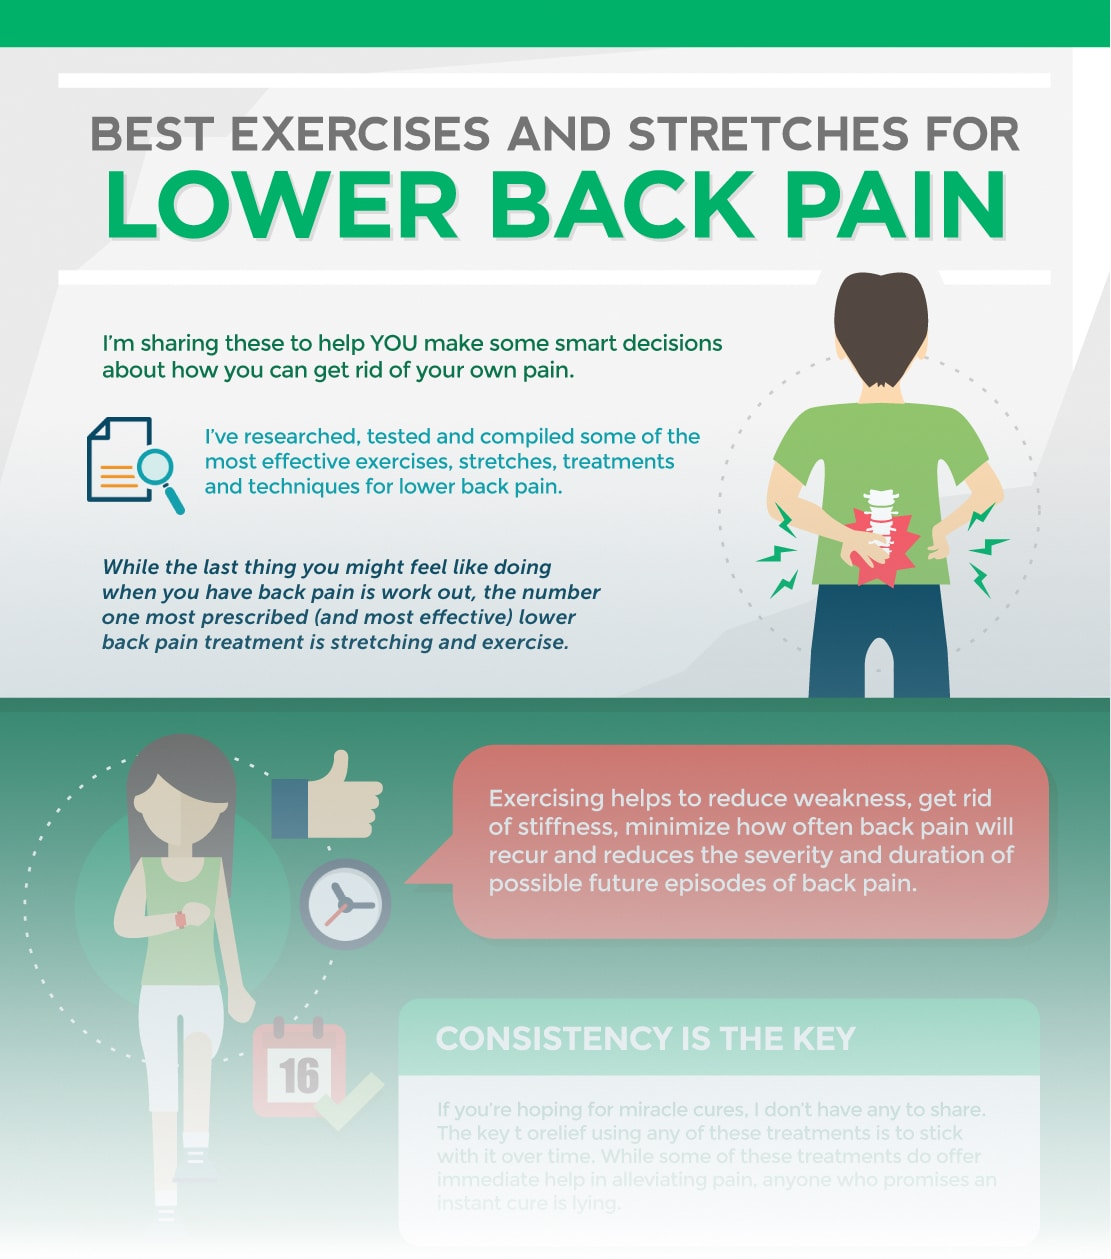 9 Best Exercises For Lower Back Pain